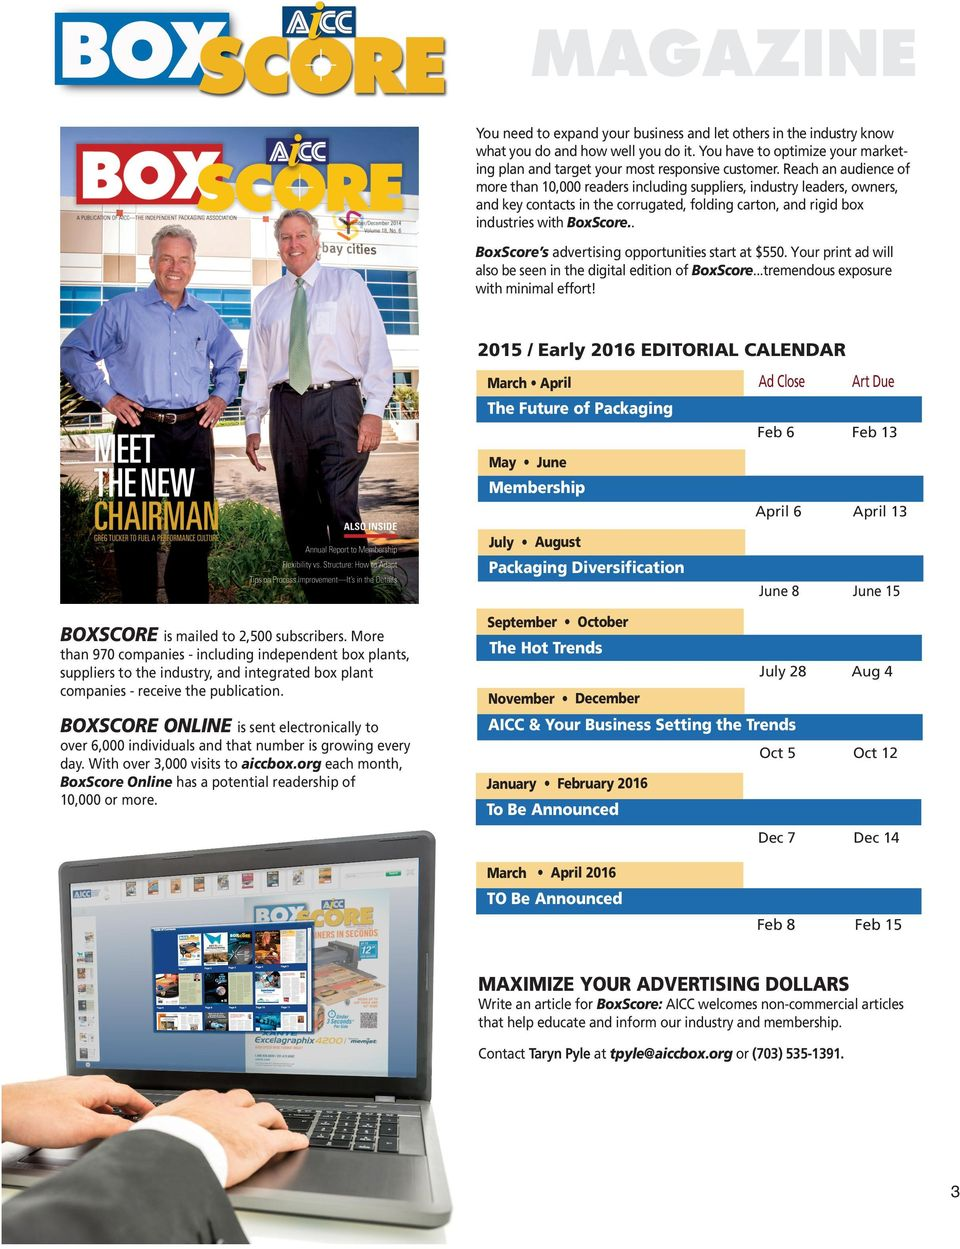 Reach an audience of more than 10,000 readers including suppliers, industry leaders, owners, and key contacts in the corrugated, folding carton, and rigid box industries with BoxScore.